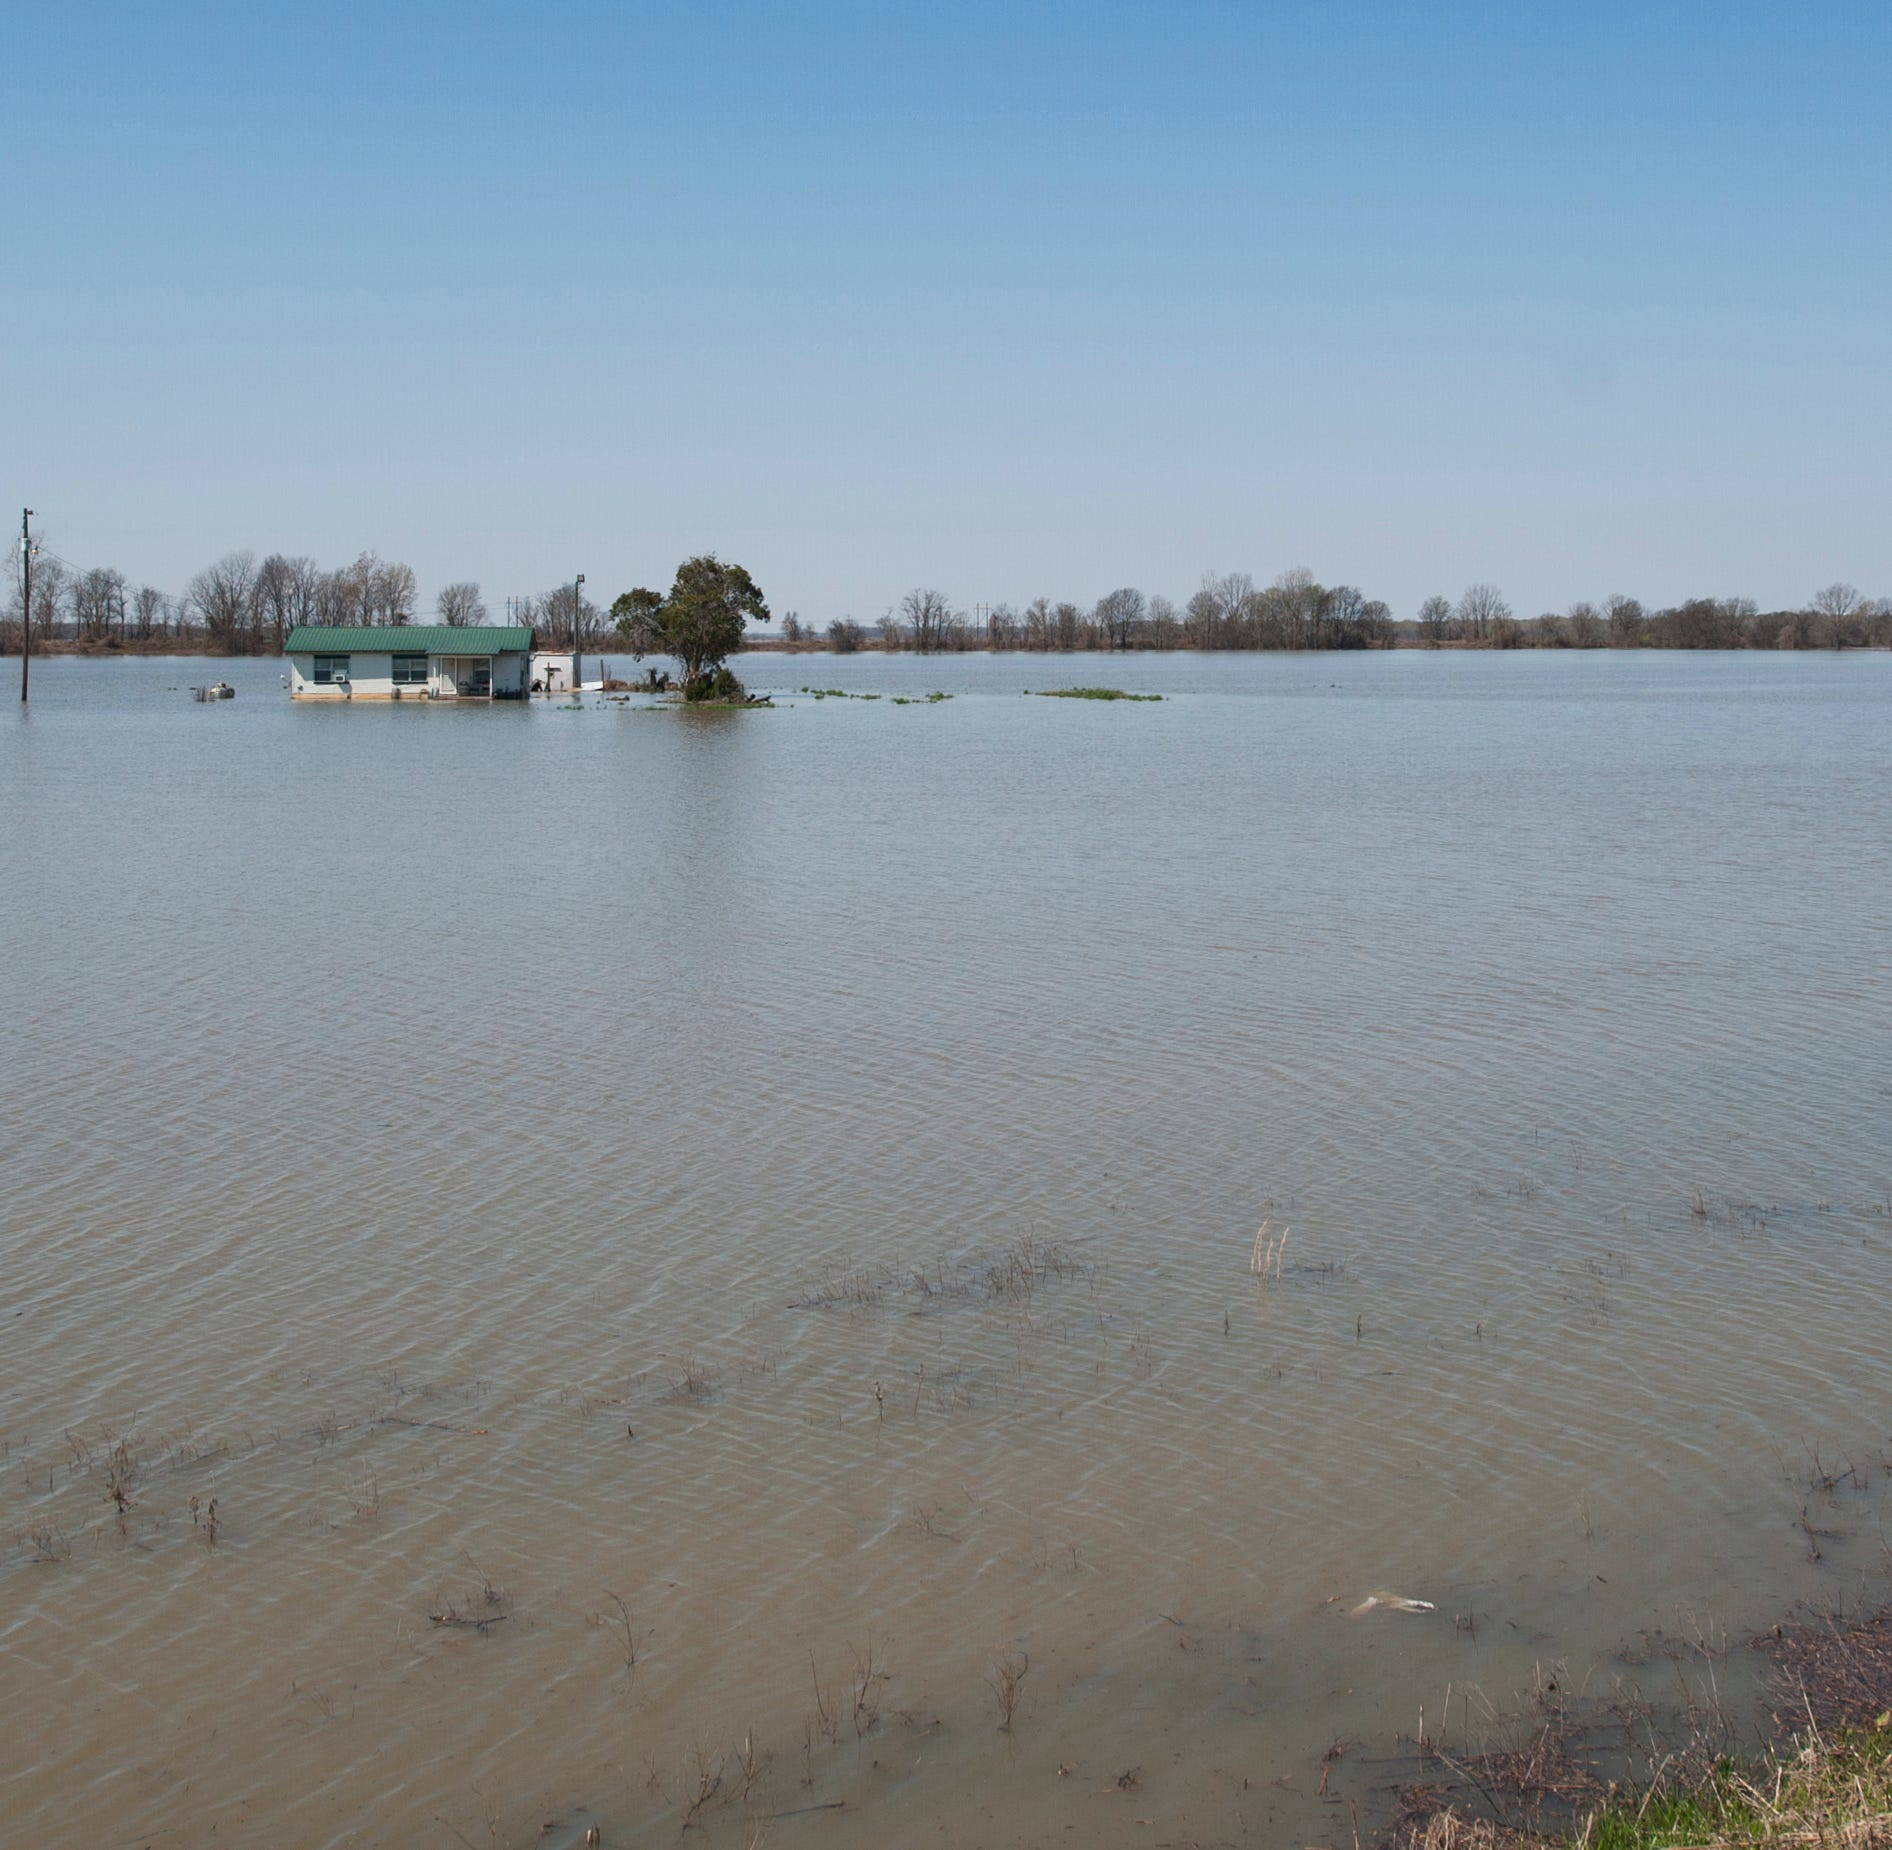 Flooding in Mississippi: It's 'a disaster in slow motion' and worst is yet to come